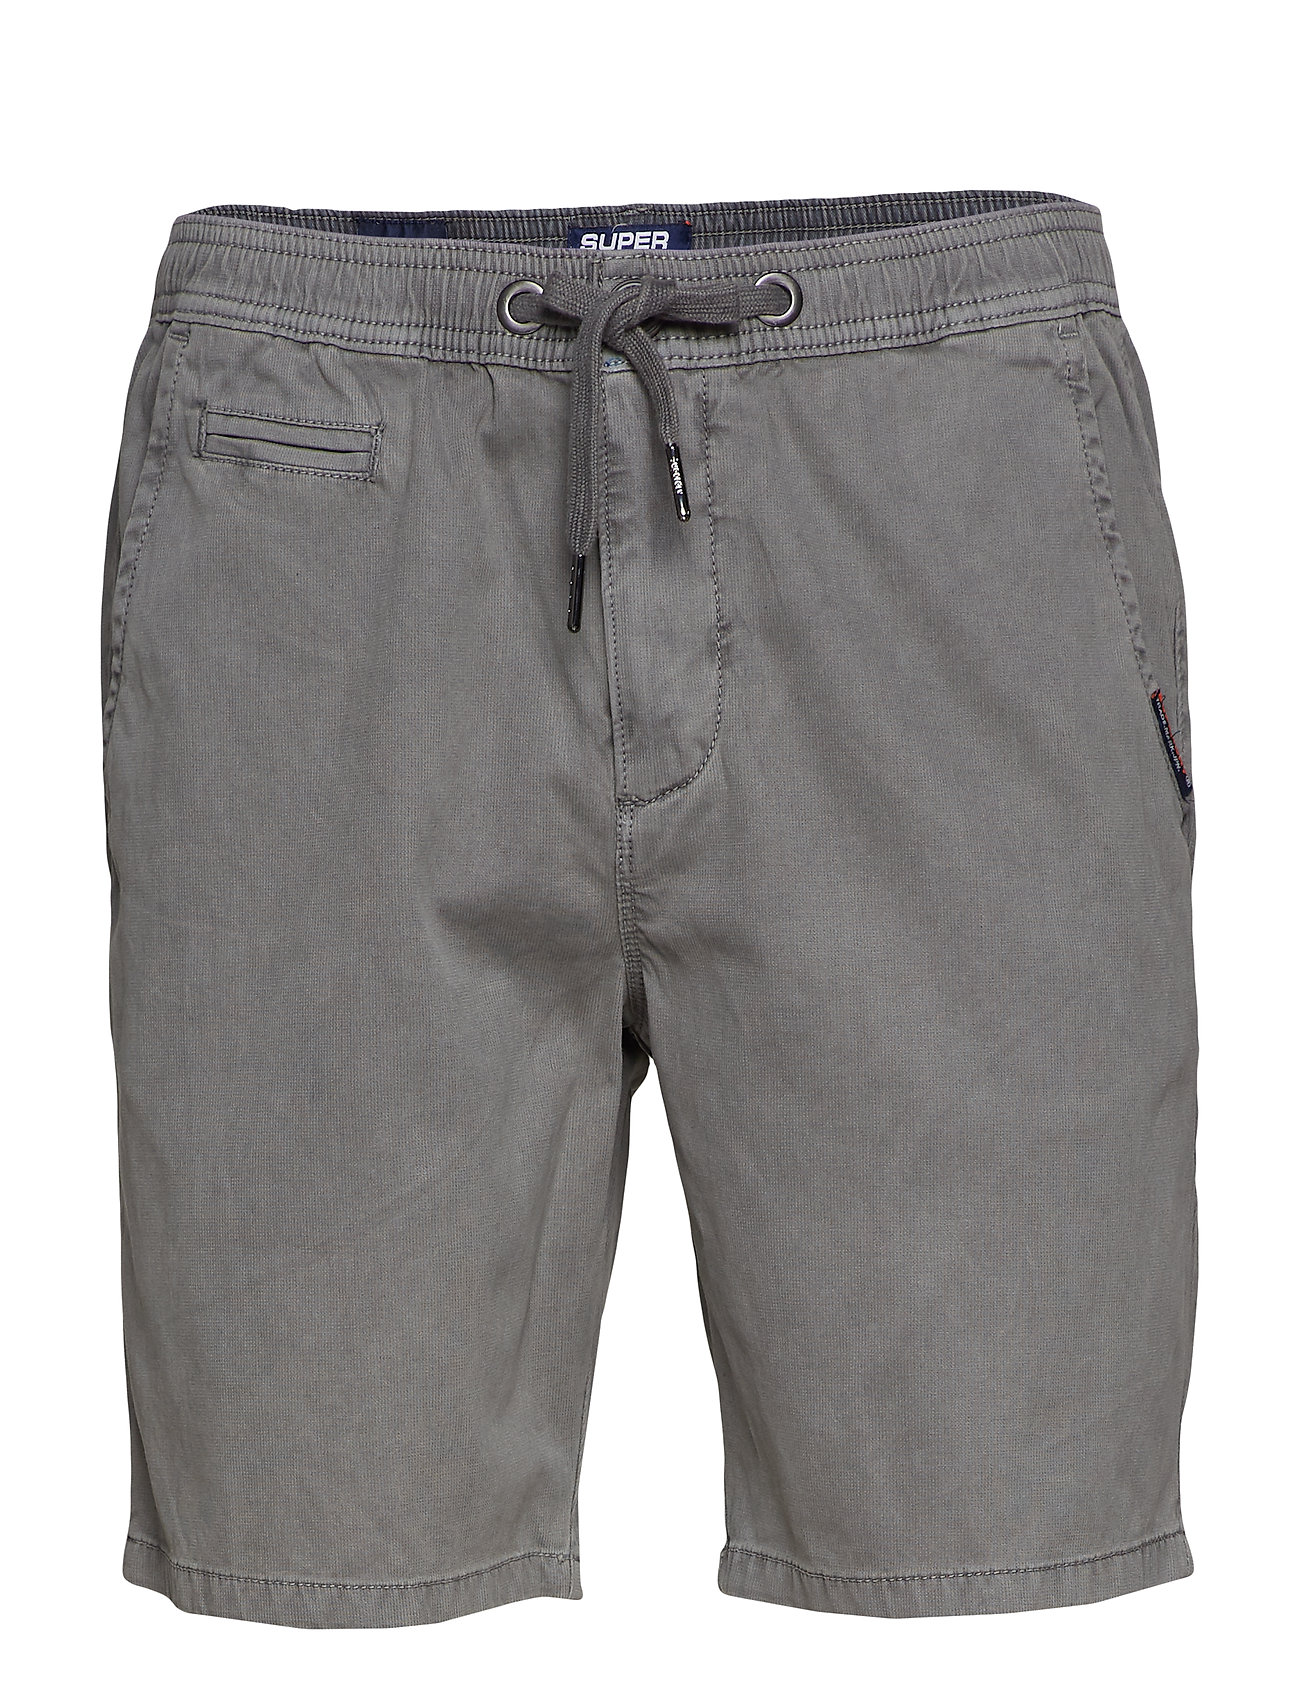 Superdry SUNSCORCHED SHORT - SPINNINGFIELD GREY